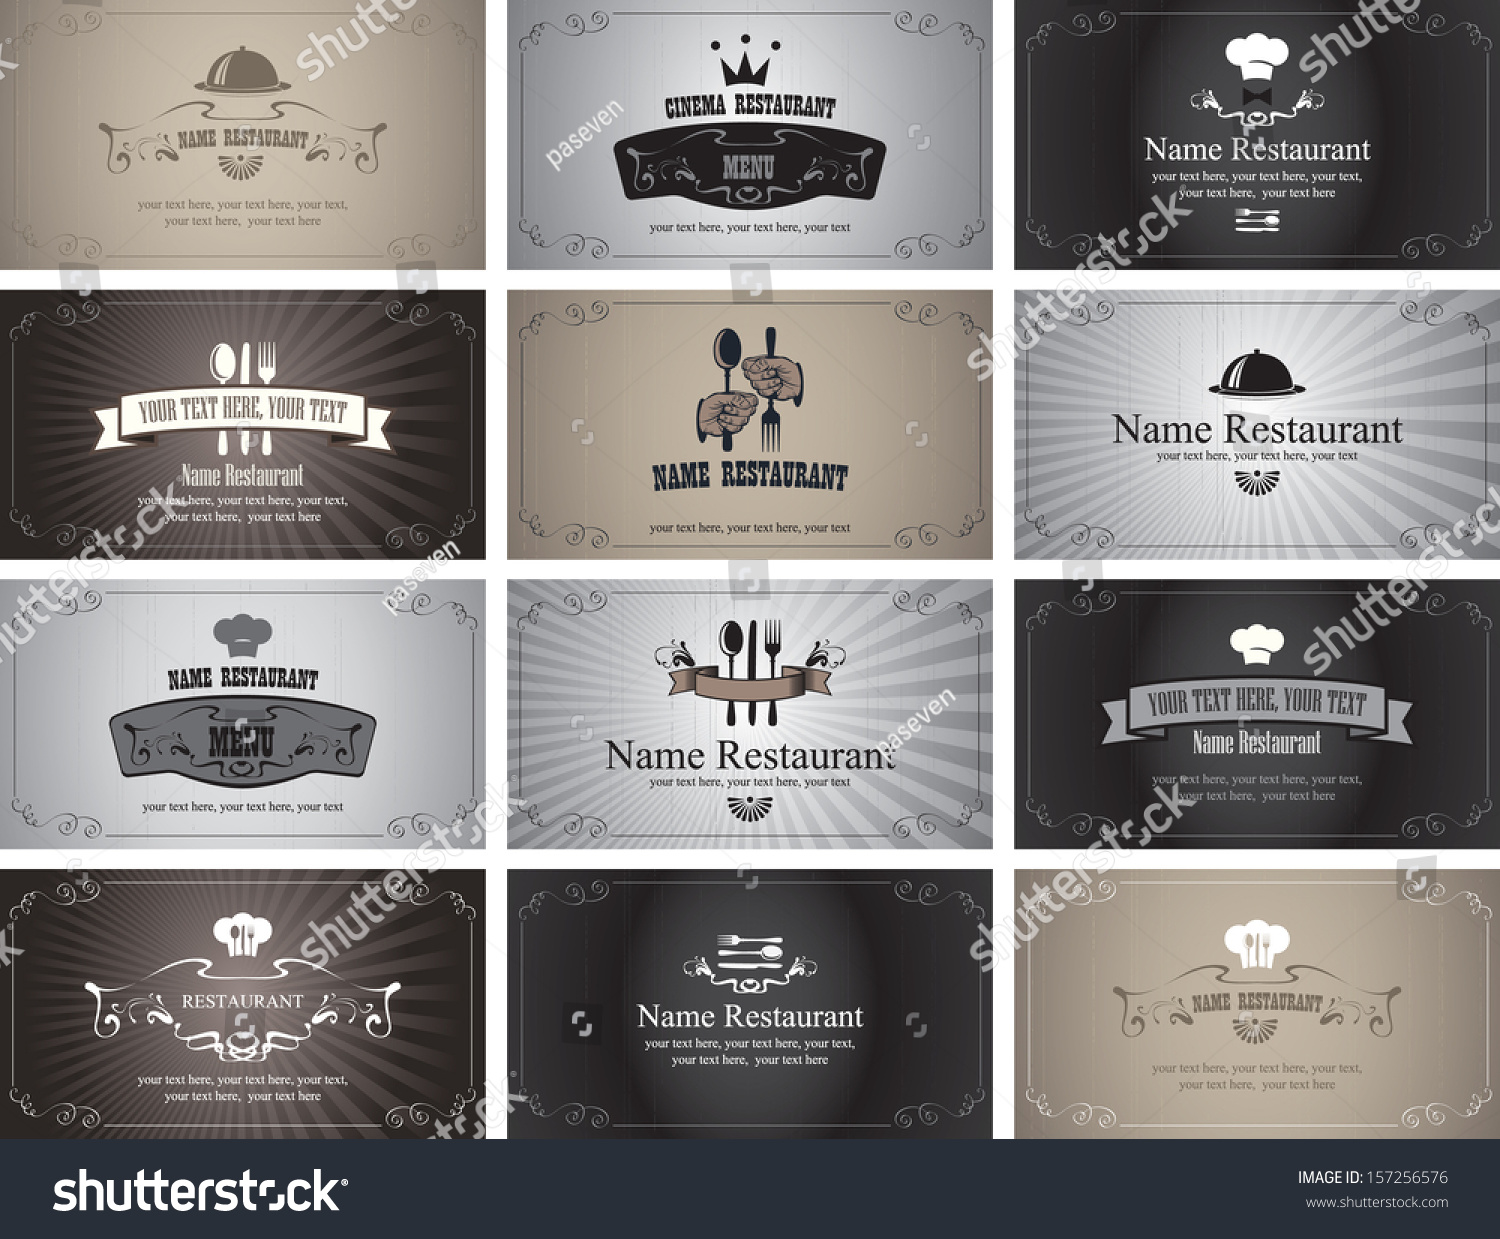 Bien-aimé Set Business Cards On Theme Food Stock Vector 157256576 - Shutterstock MD04